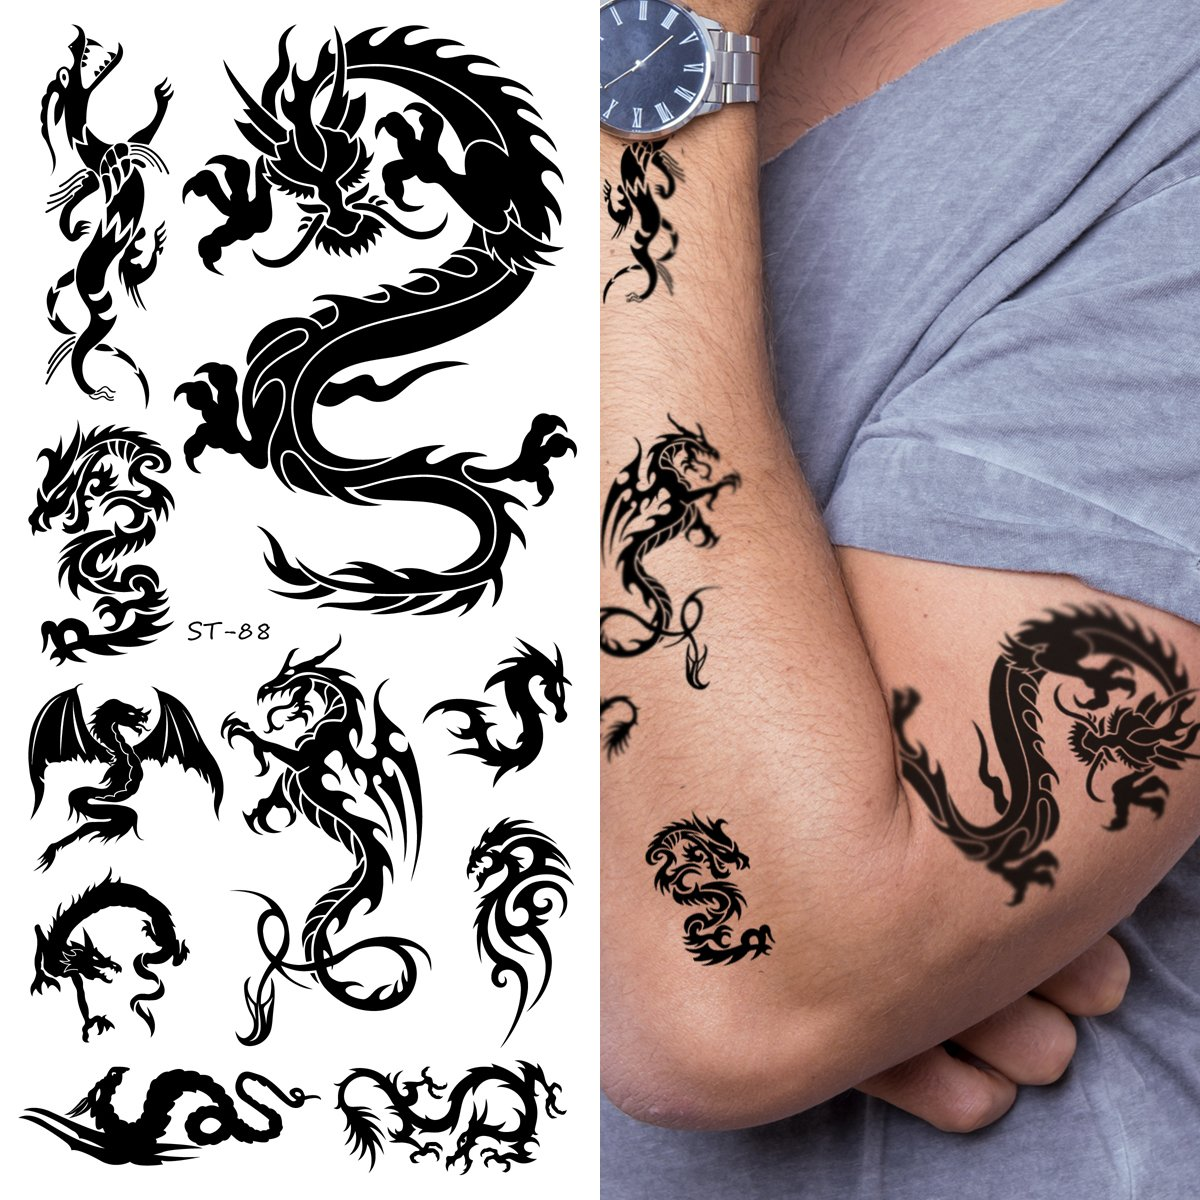 Supperb temporary tattoos small dragons for Fake tattoos amazon